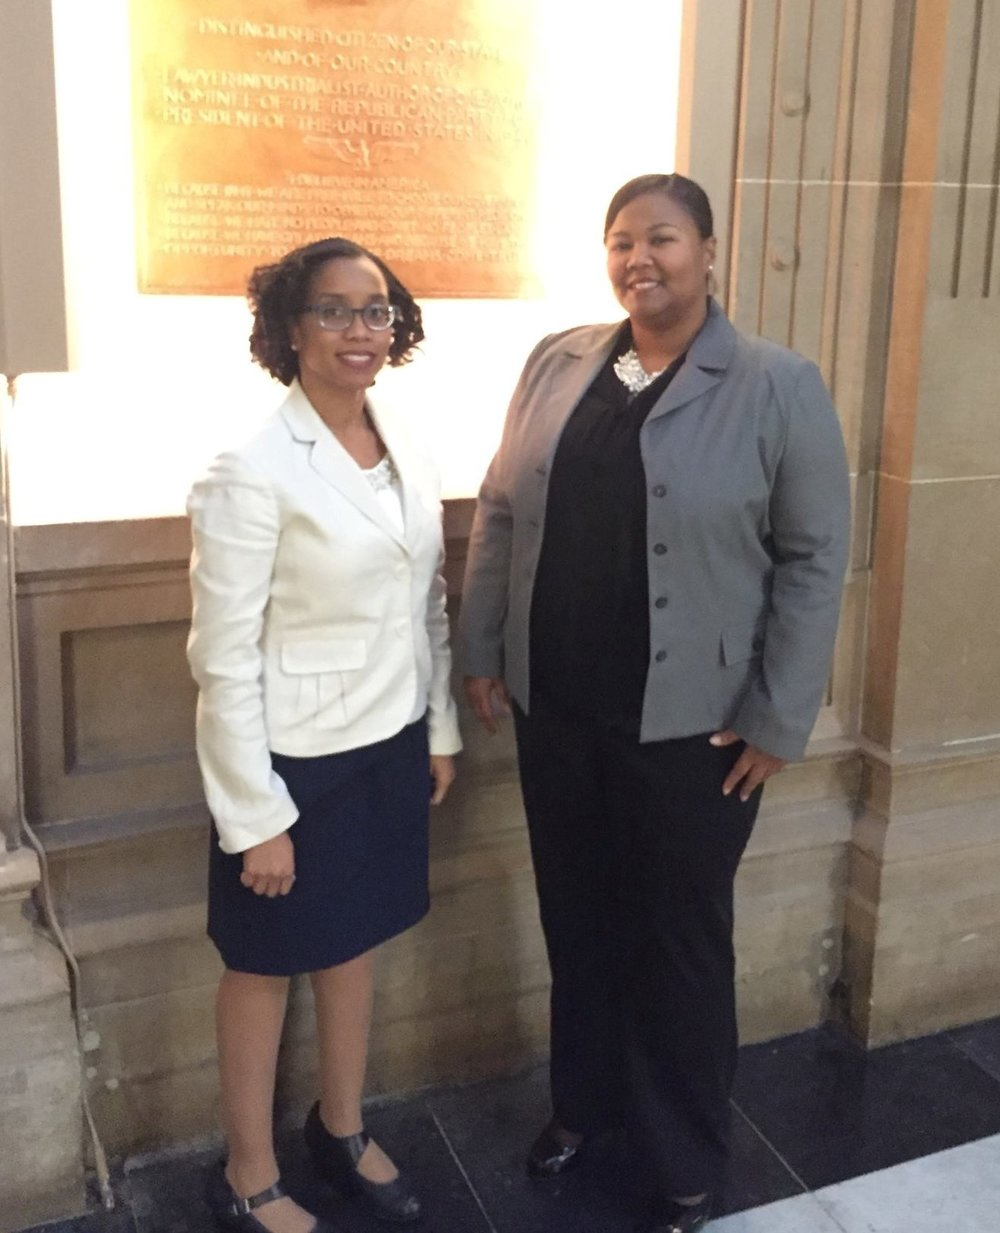 Educators Shawnta S. Barnes and Pennie Gregory at the Indiana State Capitol building to deliver testimony for HB 1421 School discipline